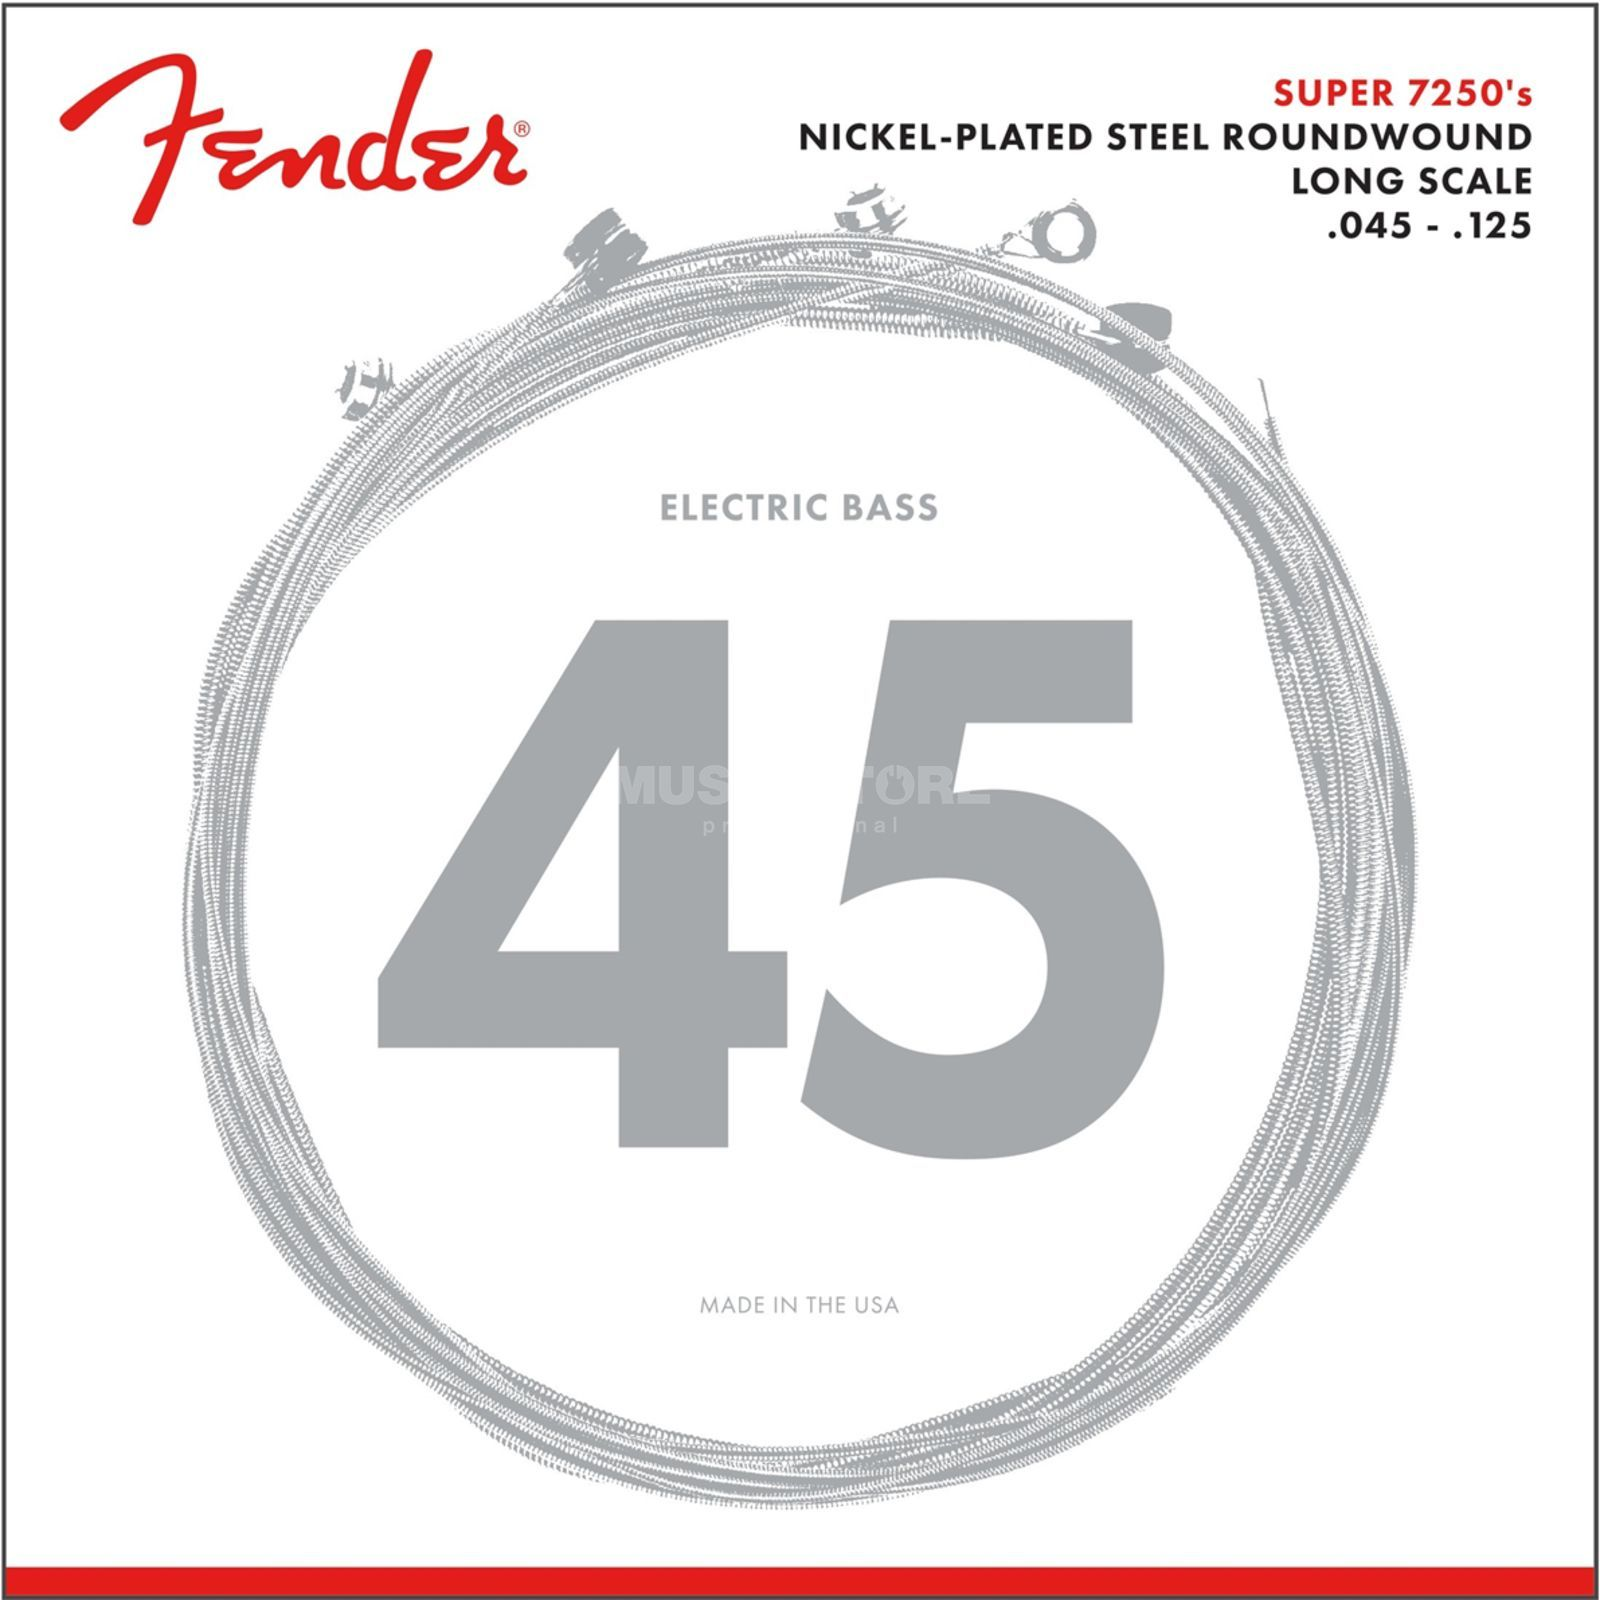 Fender Strings Super 7250 5M 45-125 Nickel Plated Steel, Roundwound, Longscale Produktbillede